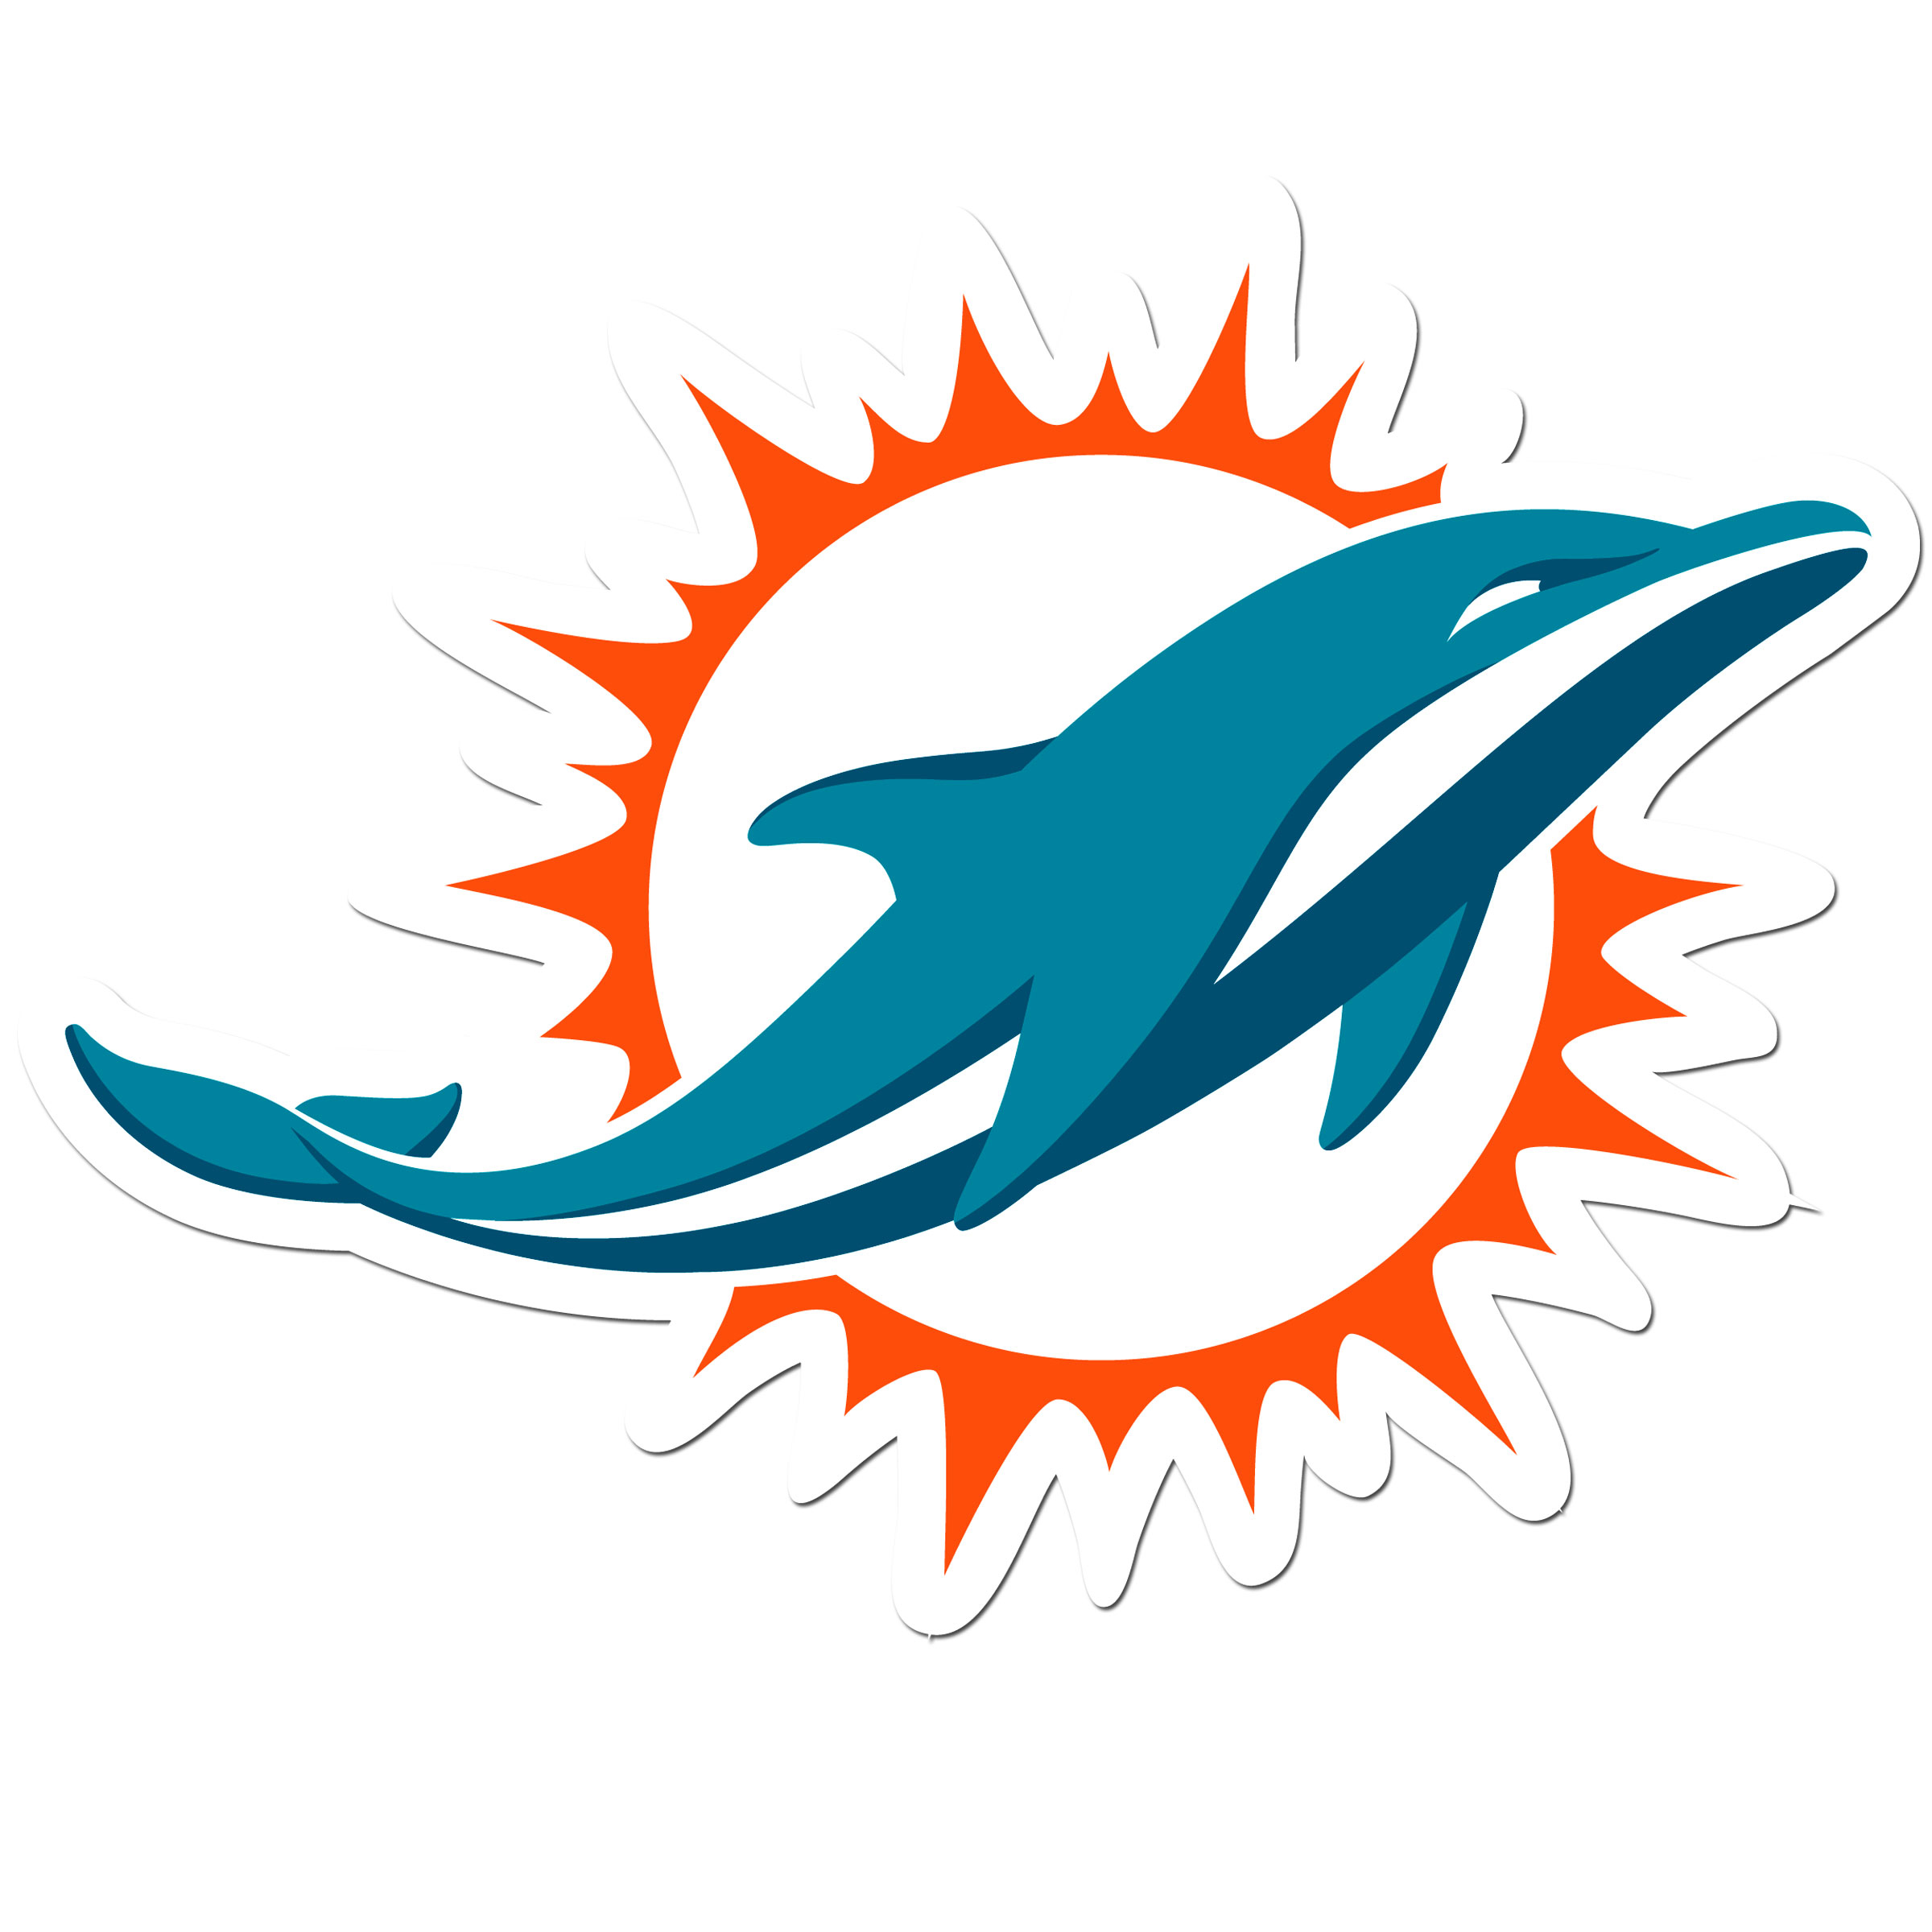 Miami Dolphins 8 inch Auto Decal - This bold, 8 inch Miami Dolphins is a great way to show off your team pride! The low tack vinyl decal is easily positioned and adjusted to make sure you get that logo in just the right spot on your vehicle. Designed to be used on the outside of the window.